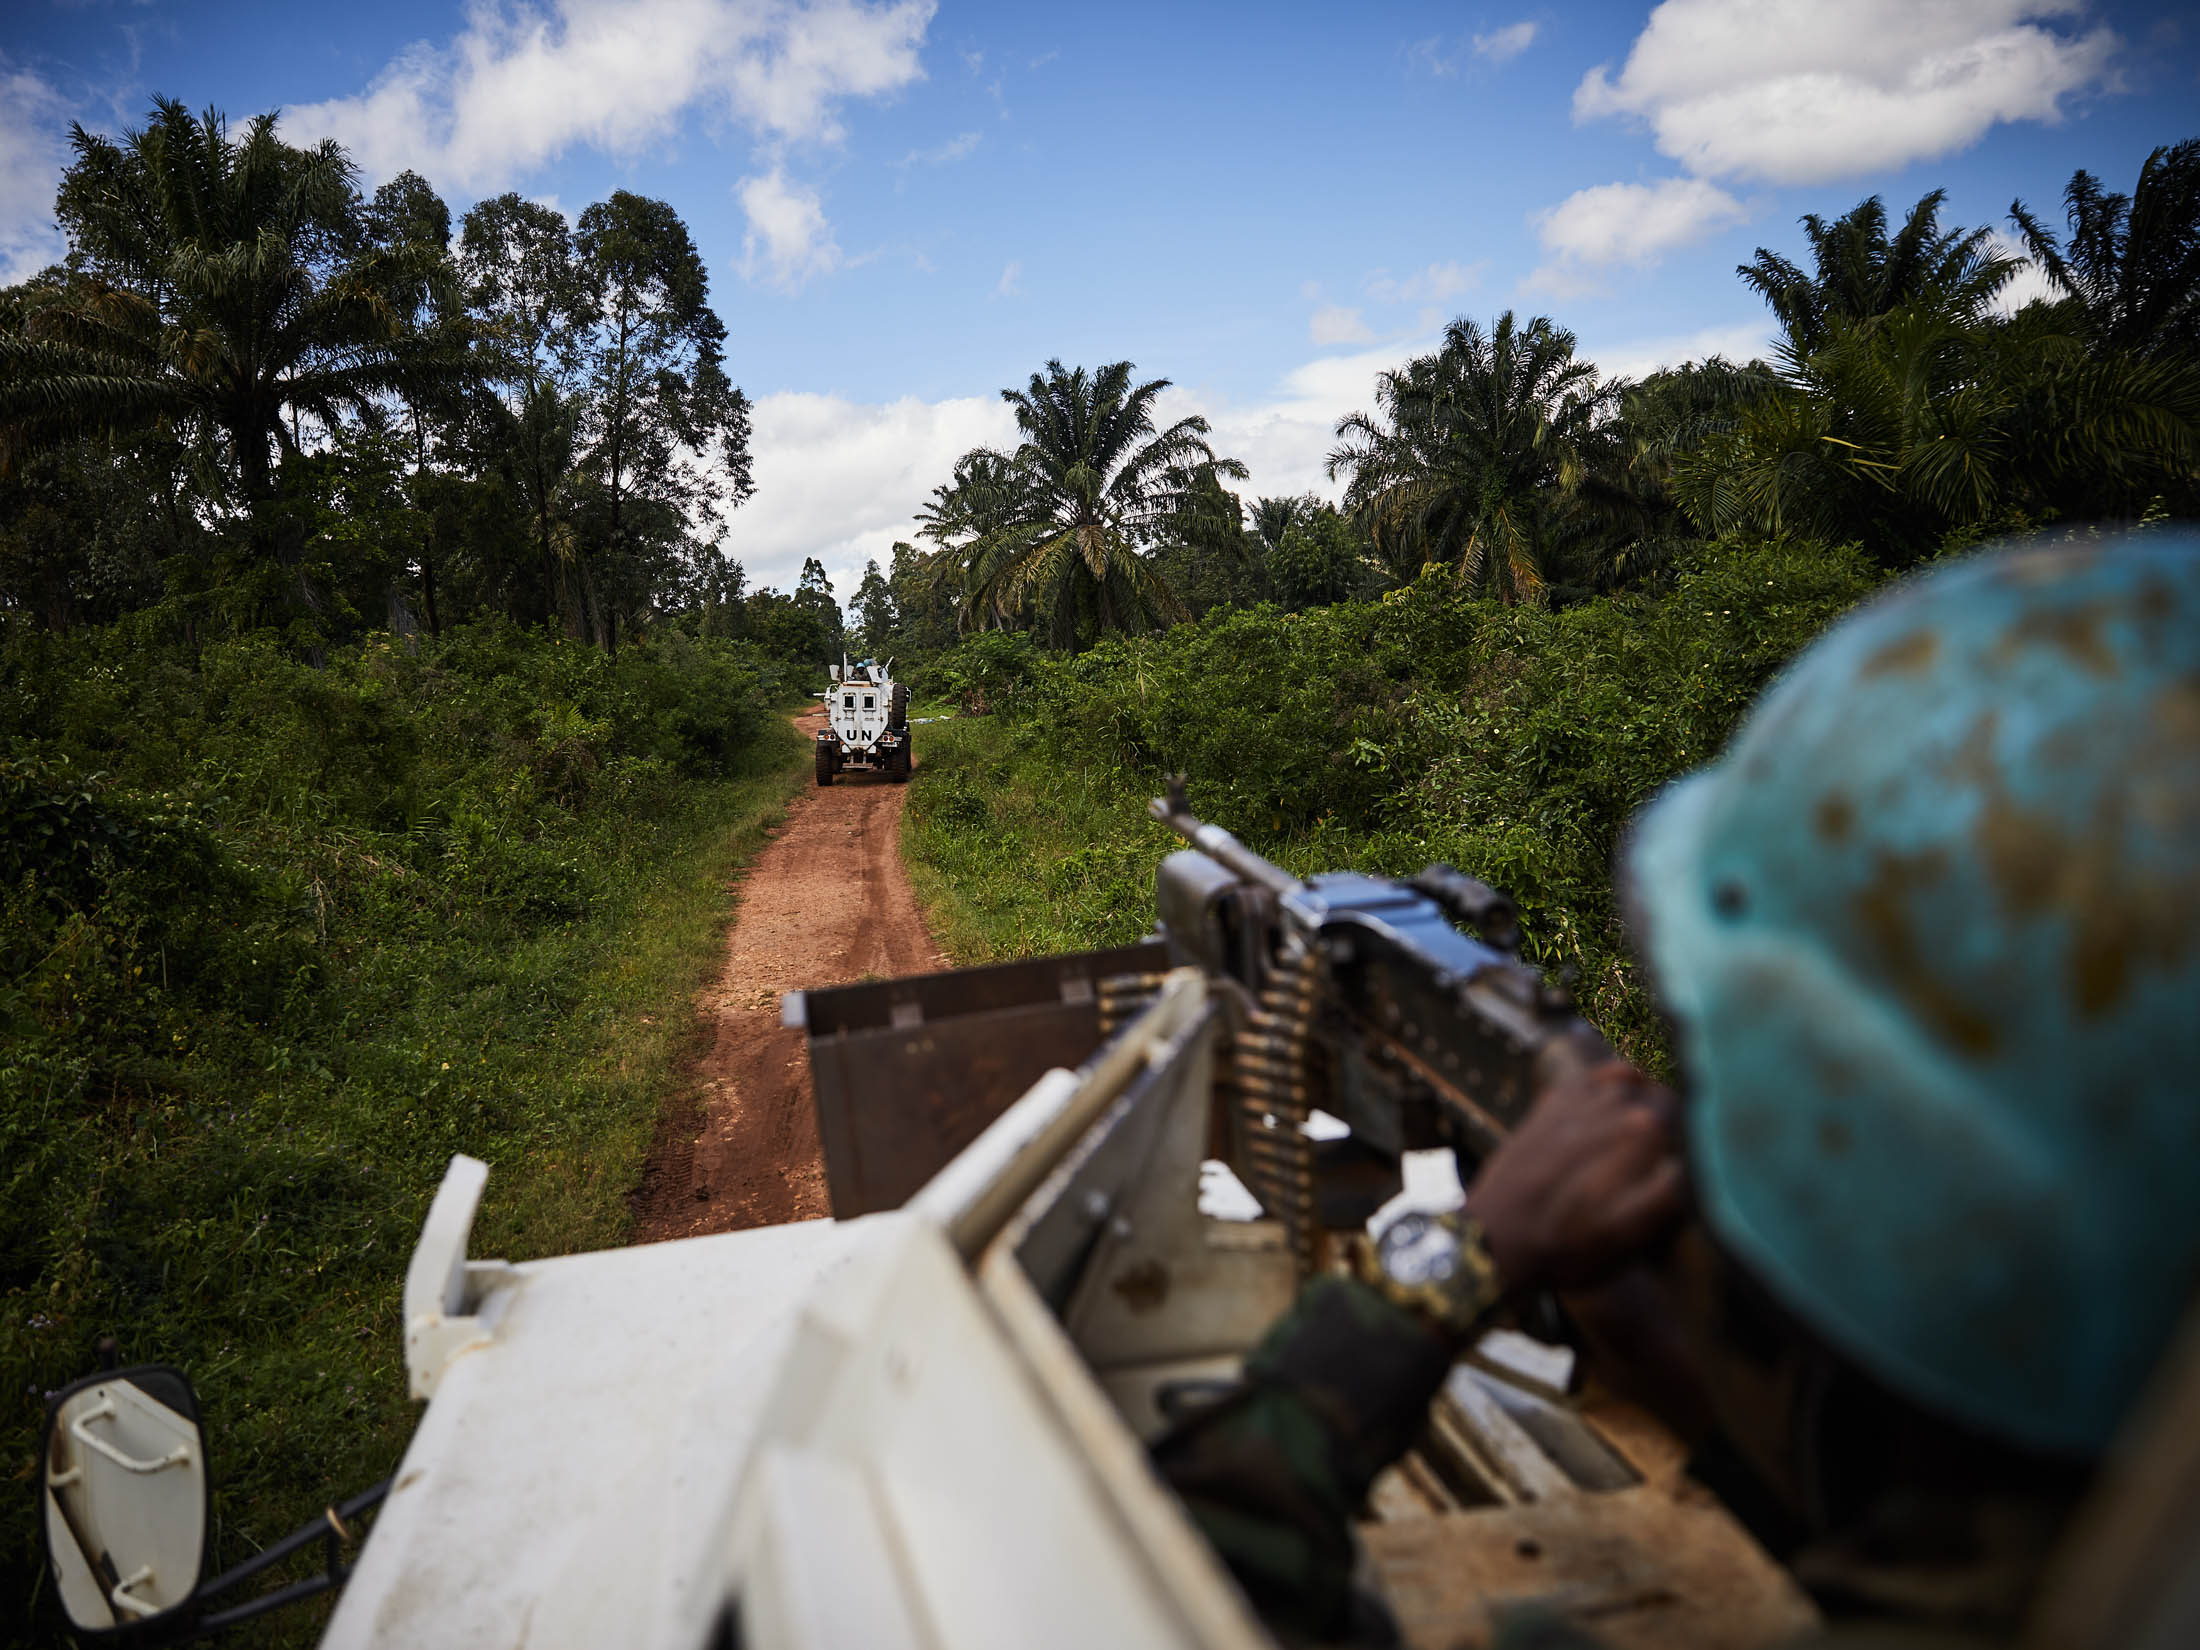 Malawian Troops of the United Nations Force Intervention Brigade patrol in Beni Territory. Response to the ongoing Ebola crisis in North Kivu is hampered by rebel attacks in the region.